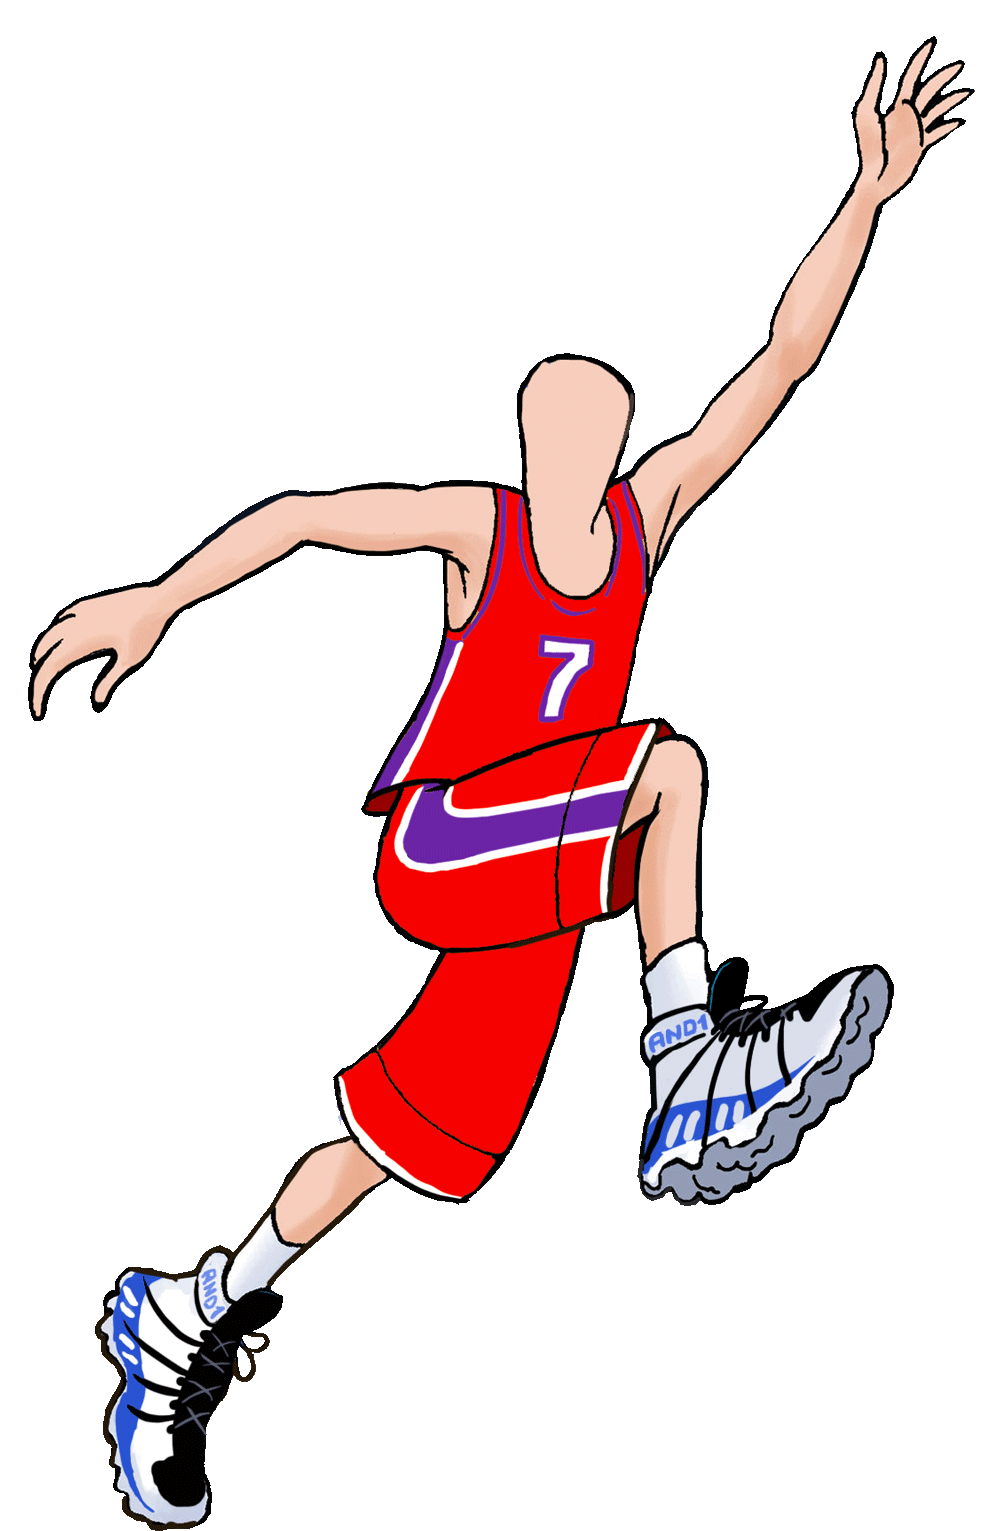 Basketball clipart watermark jpg download Order a caricature from photo online by Wish2Be #1 artists jpg download